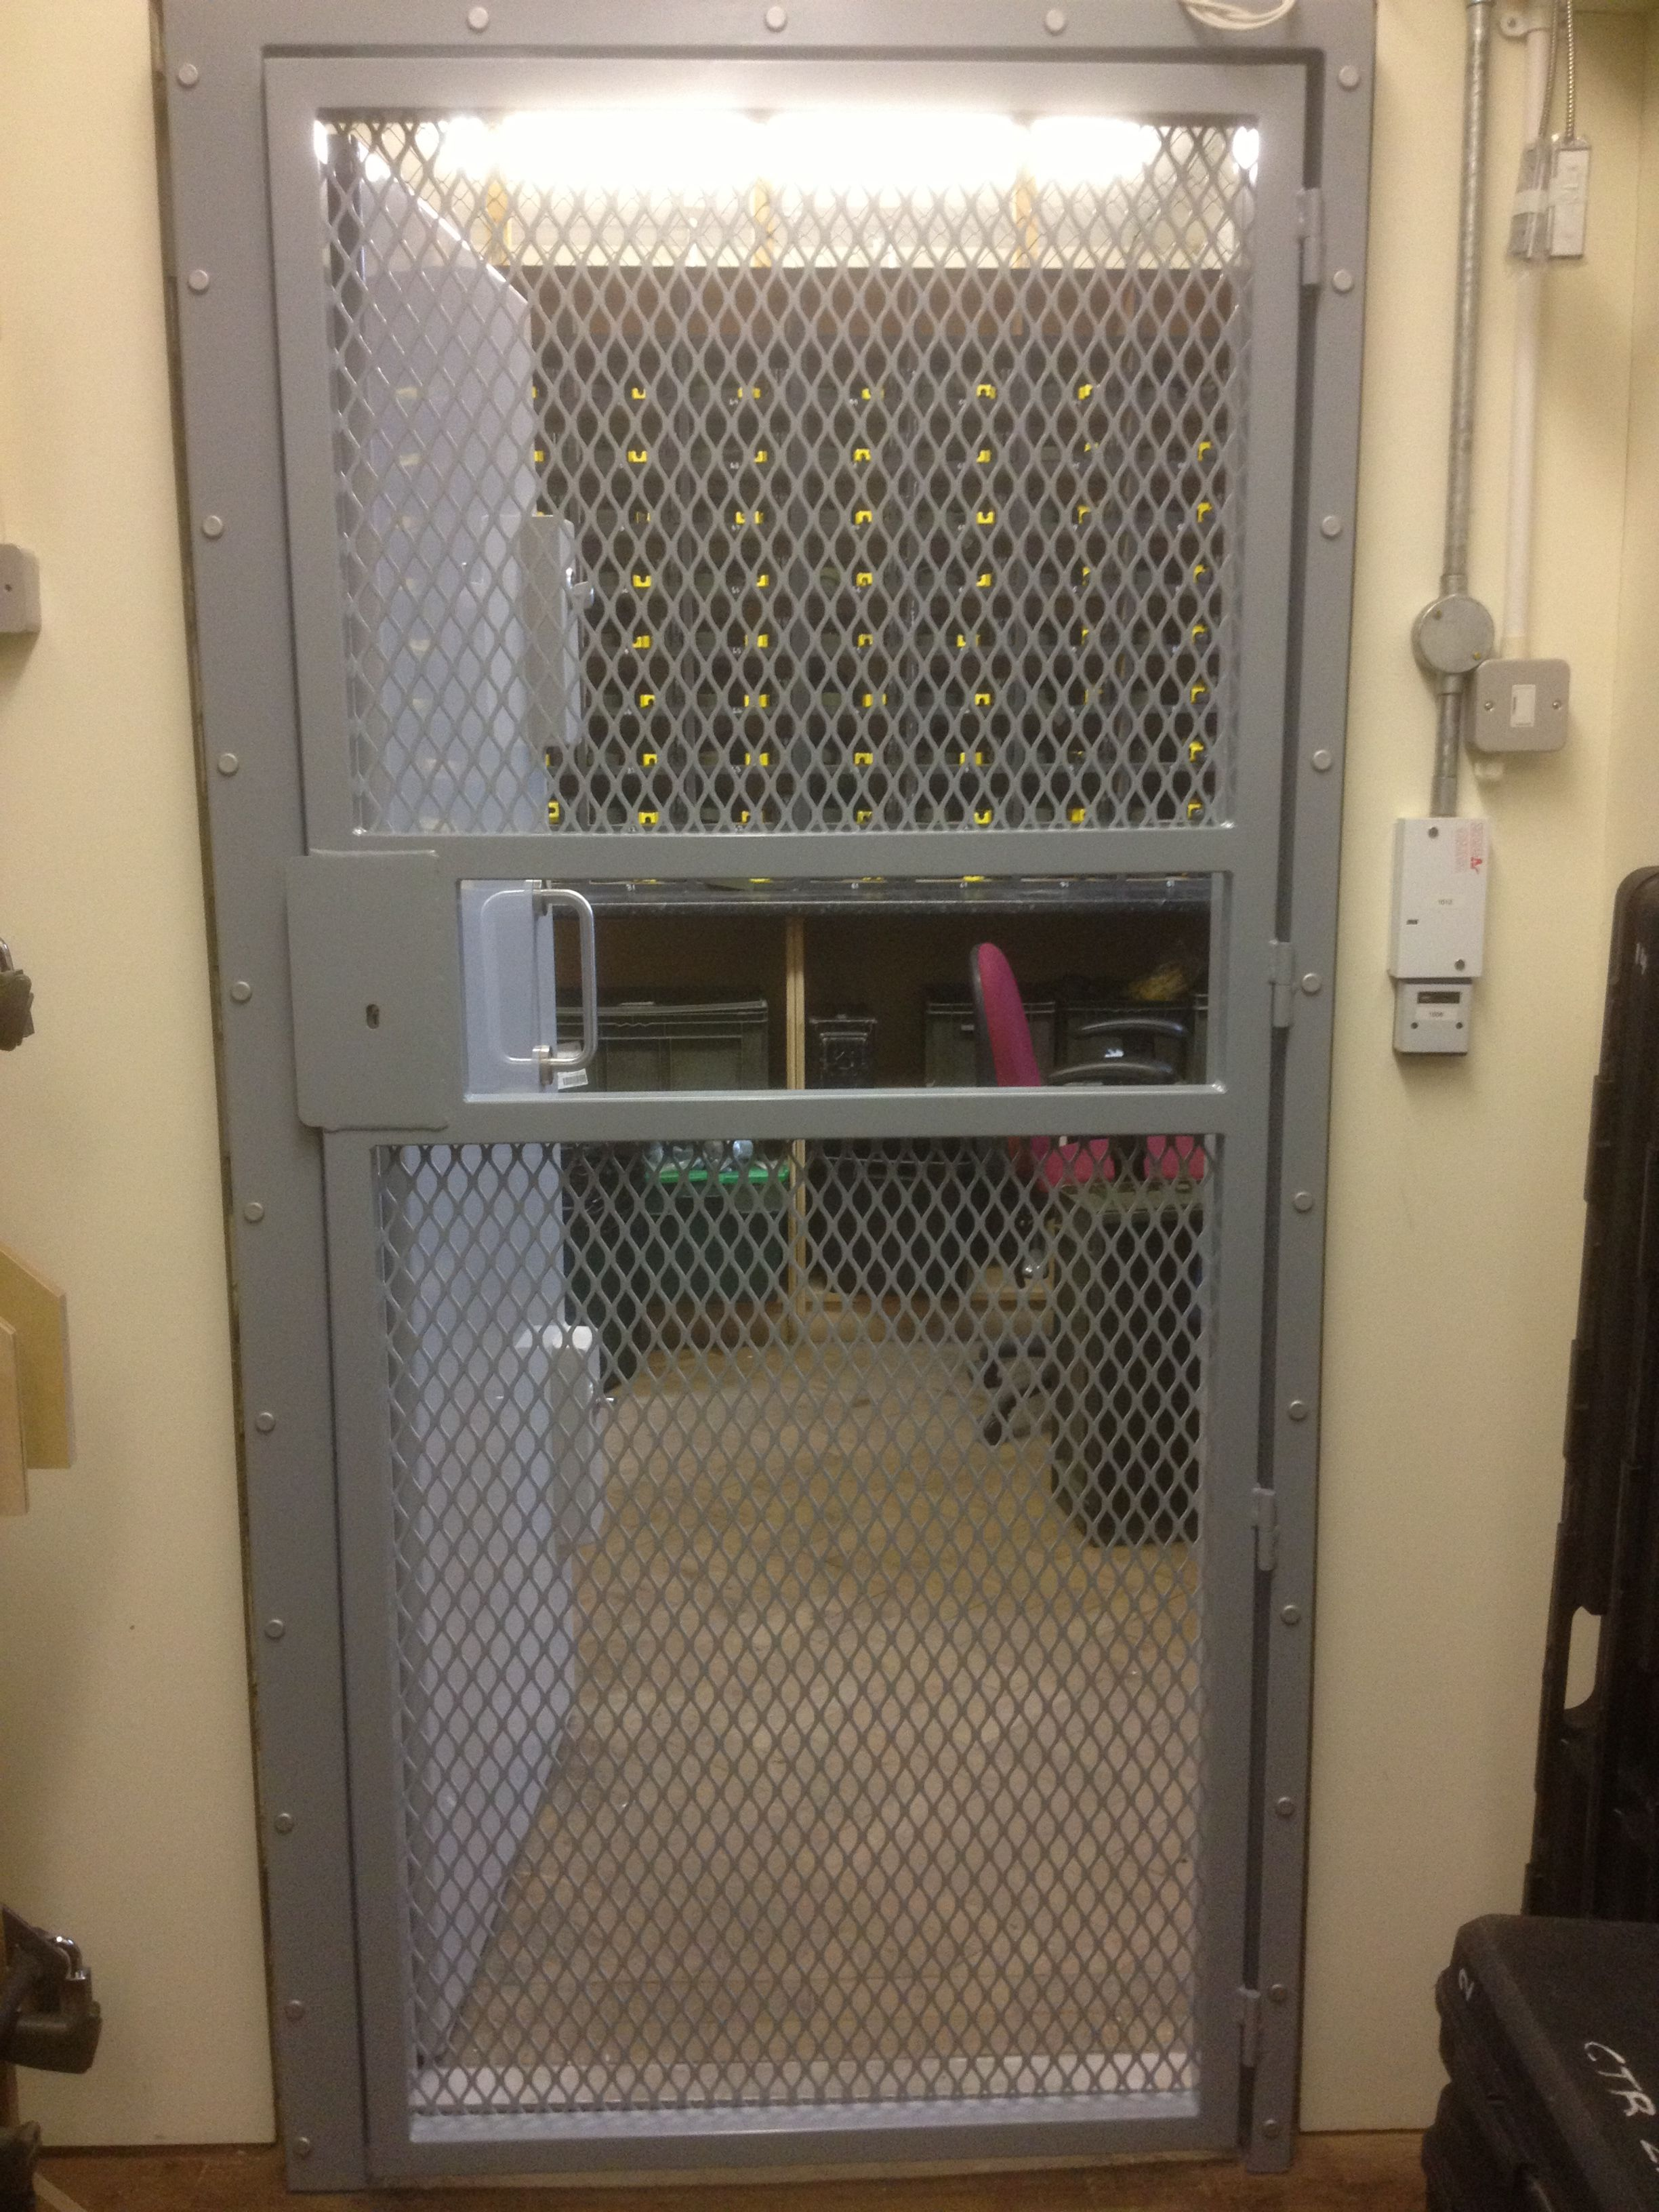 Commercial Security Doors rsg3000 security door gates fitted to the opening of an